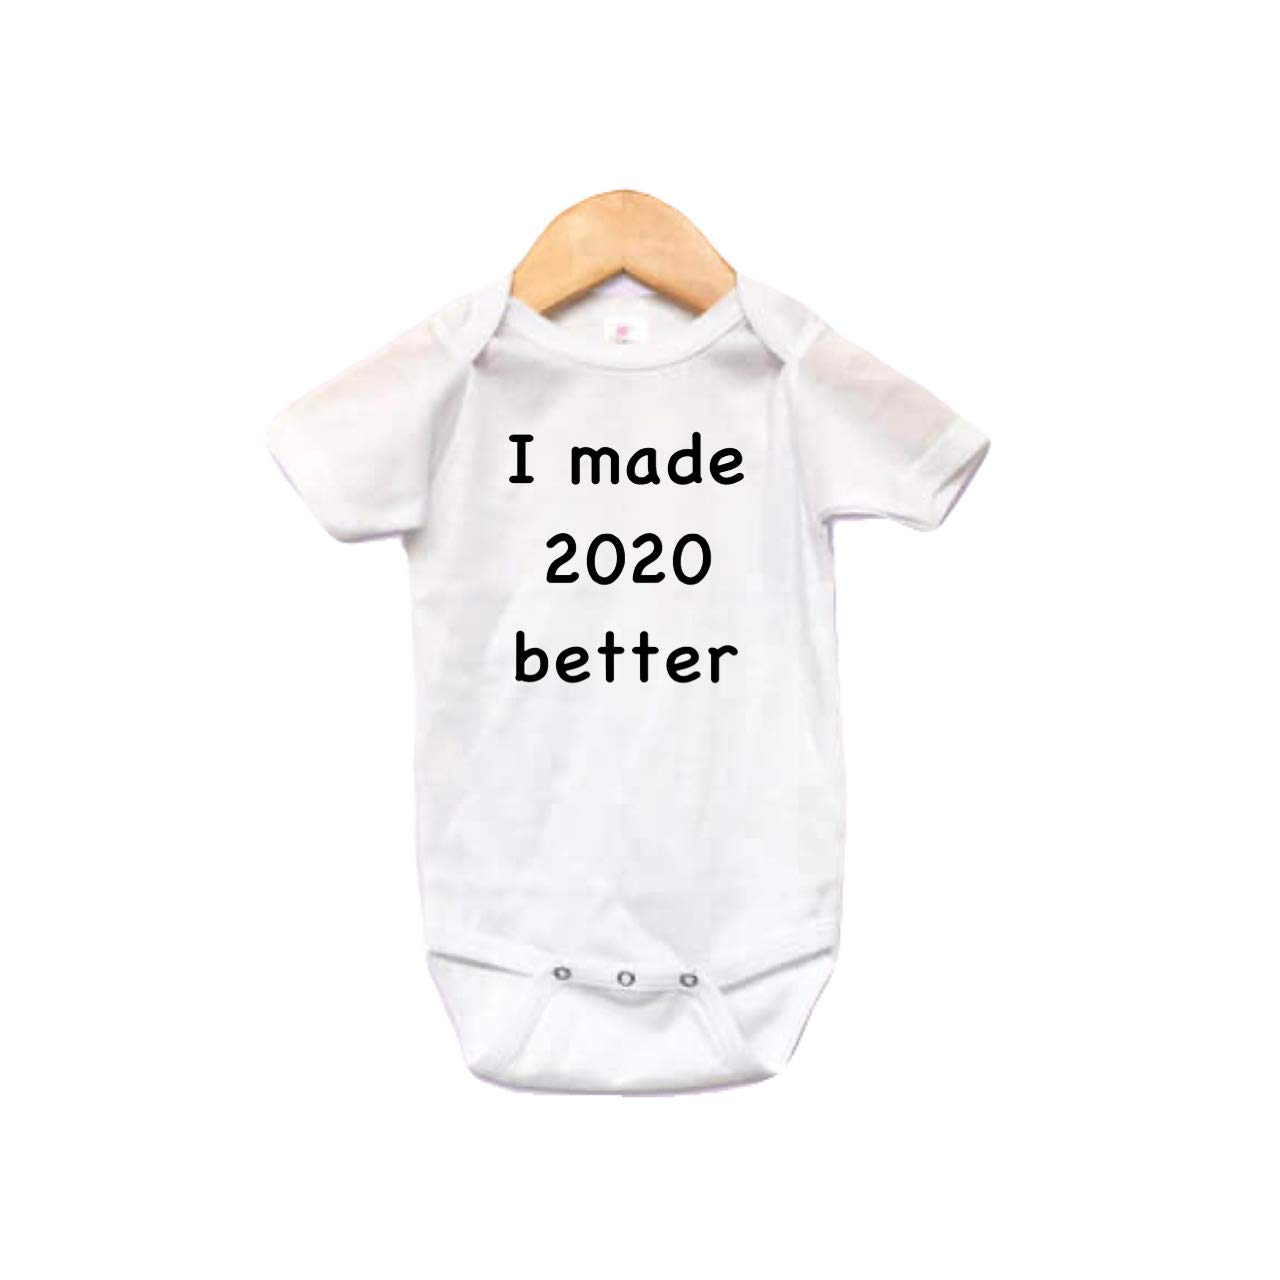 Sales Special sale item I made 2020 better baby bodysuit pandemic